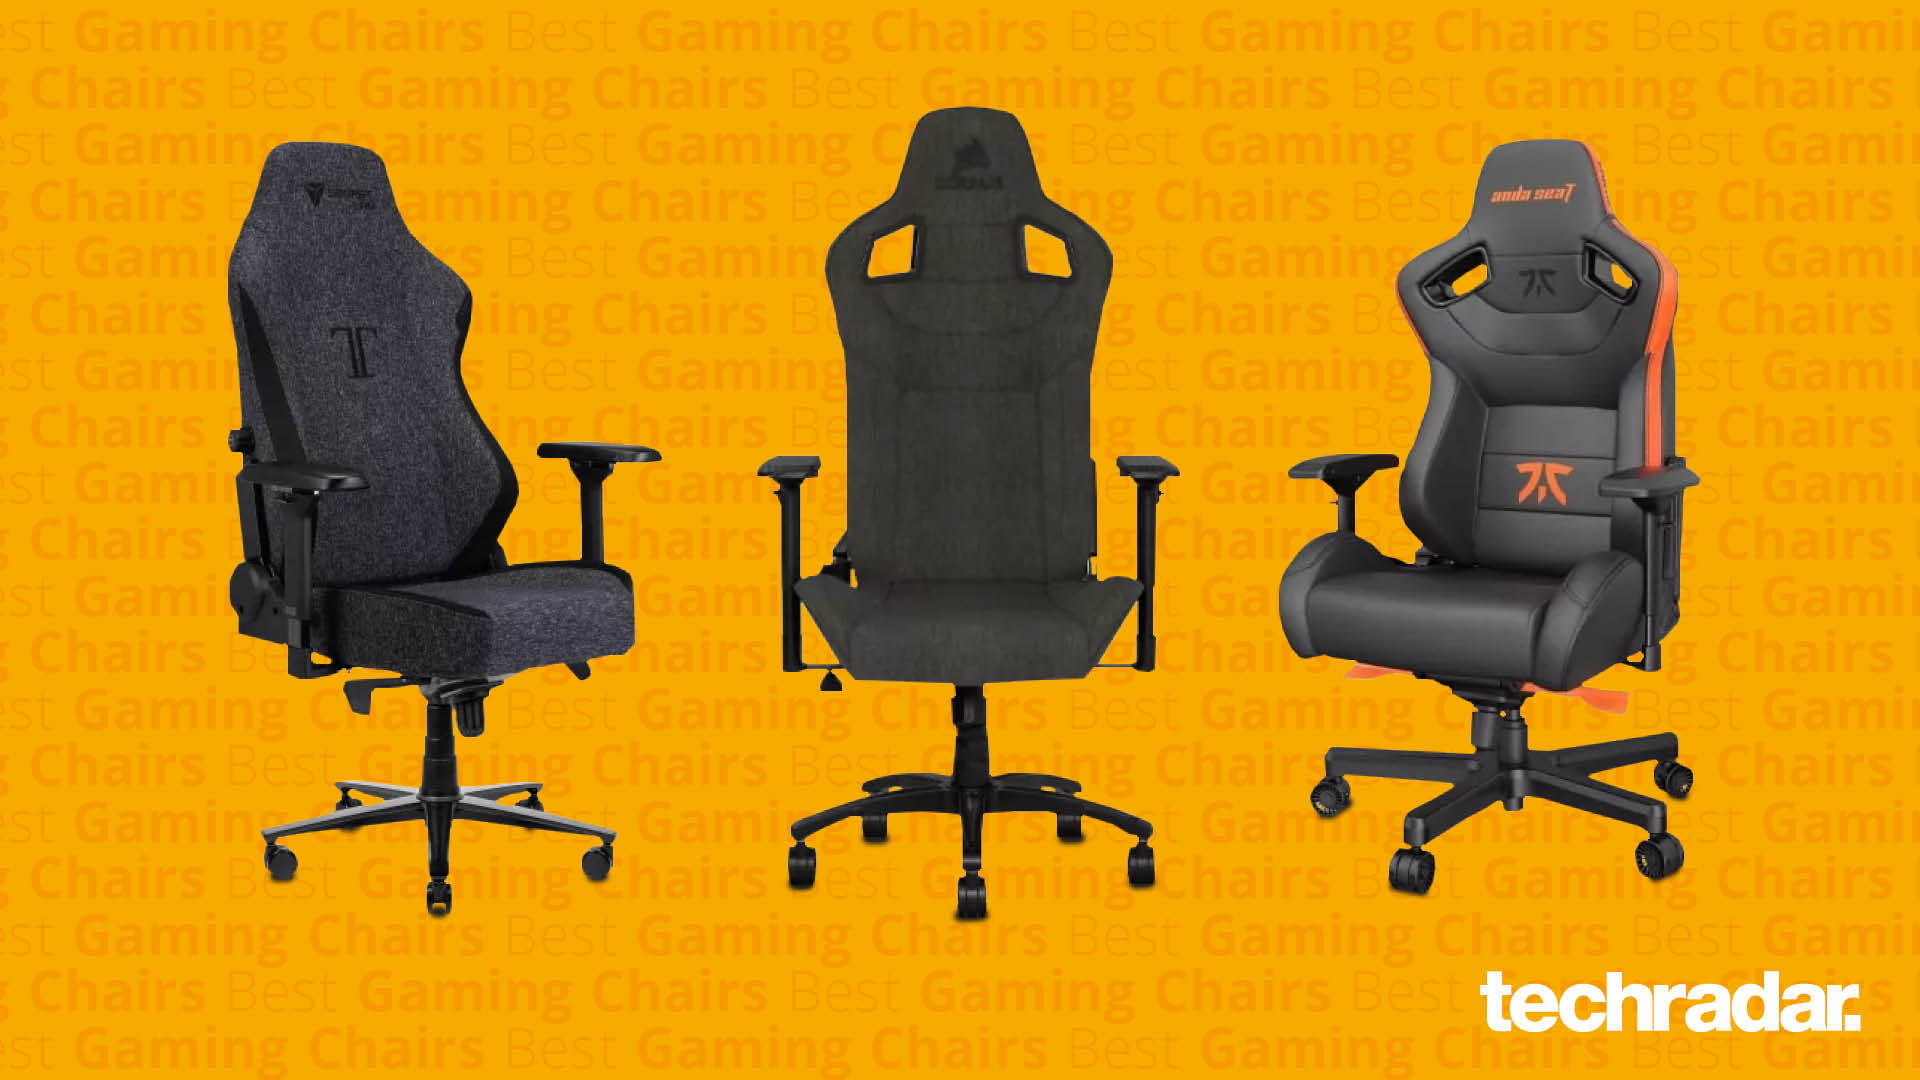 Pc Gaming Chairs, Round Bottom Gaming Chair